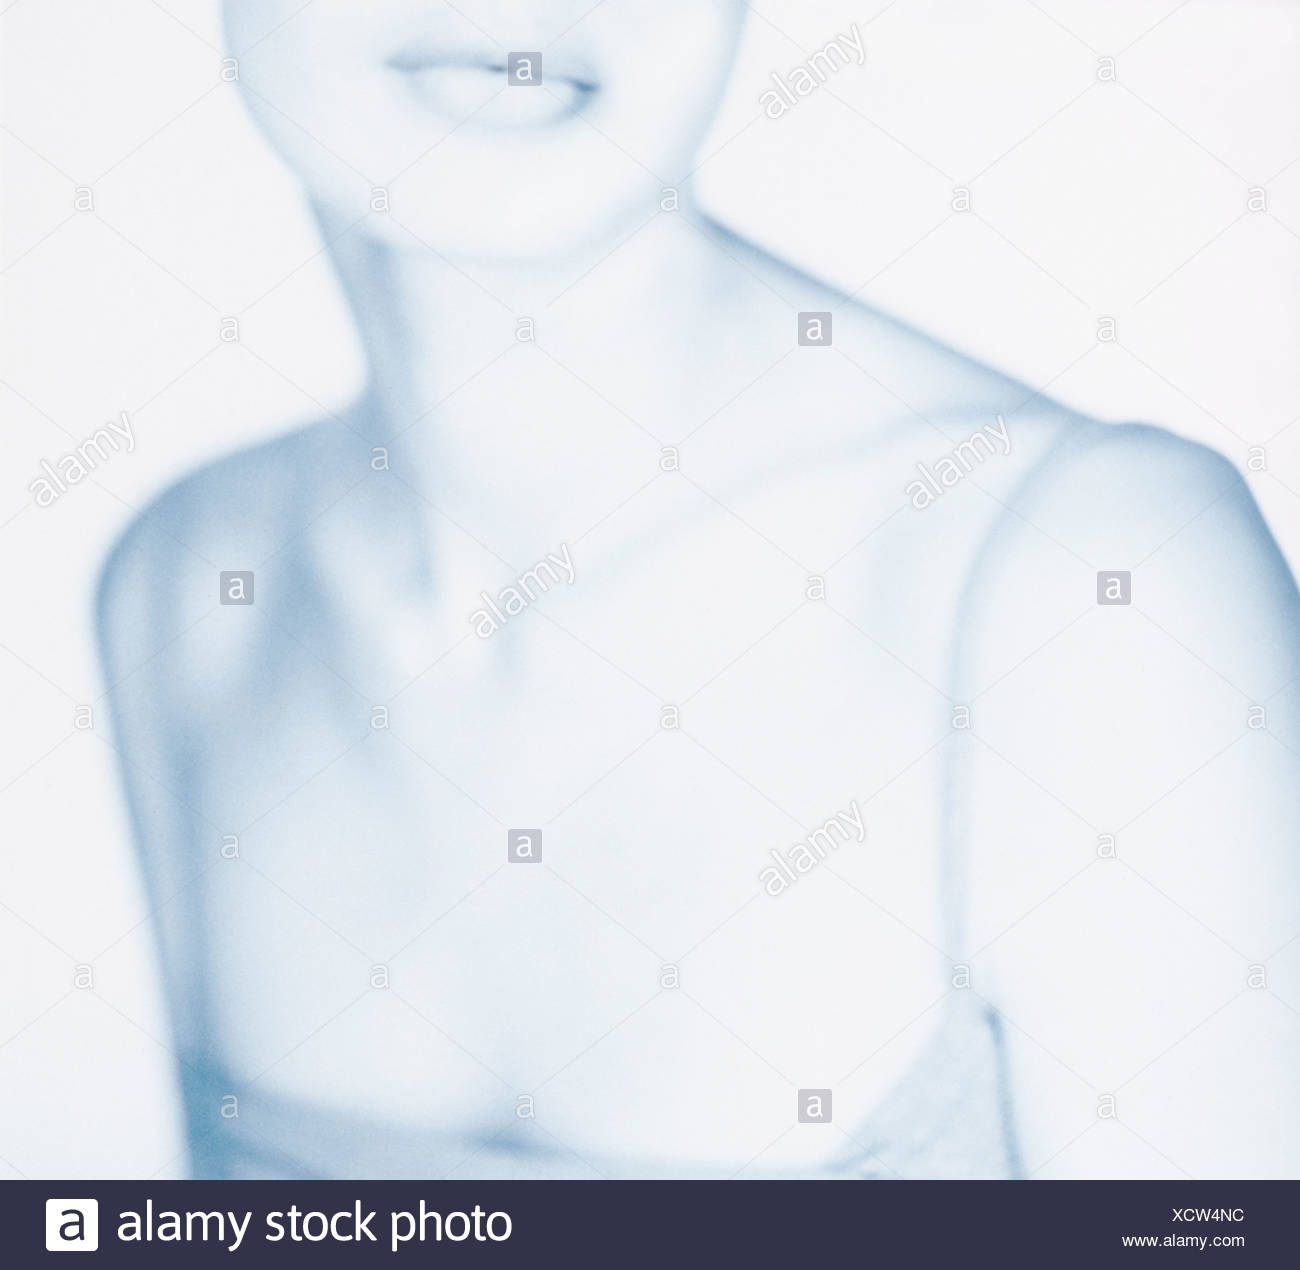 Ghosted image of a woman's neck and chest - Stock Image